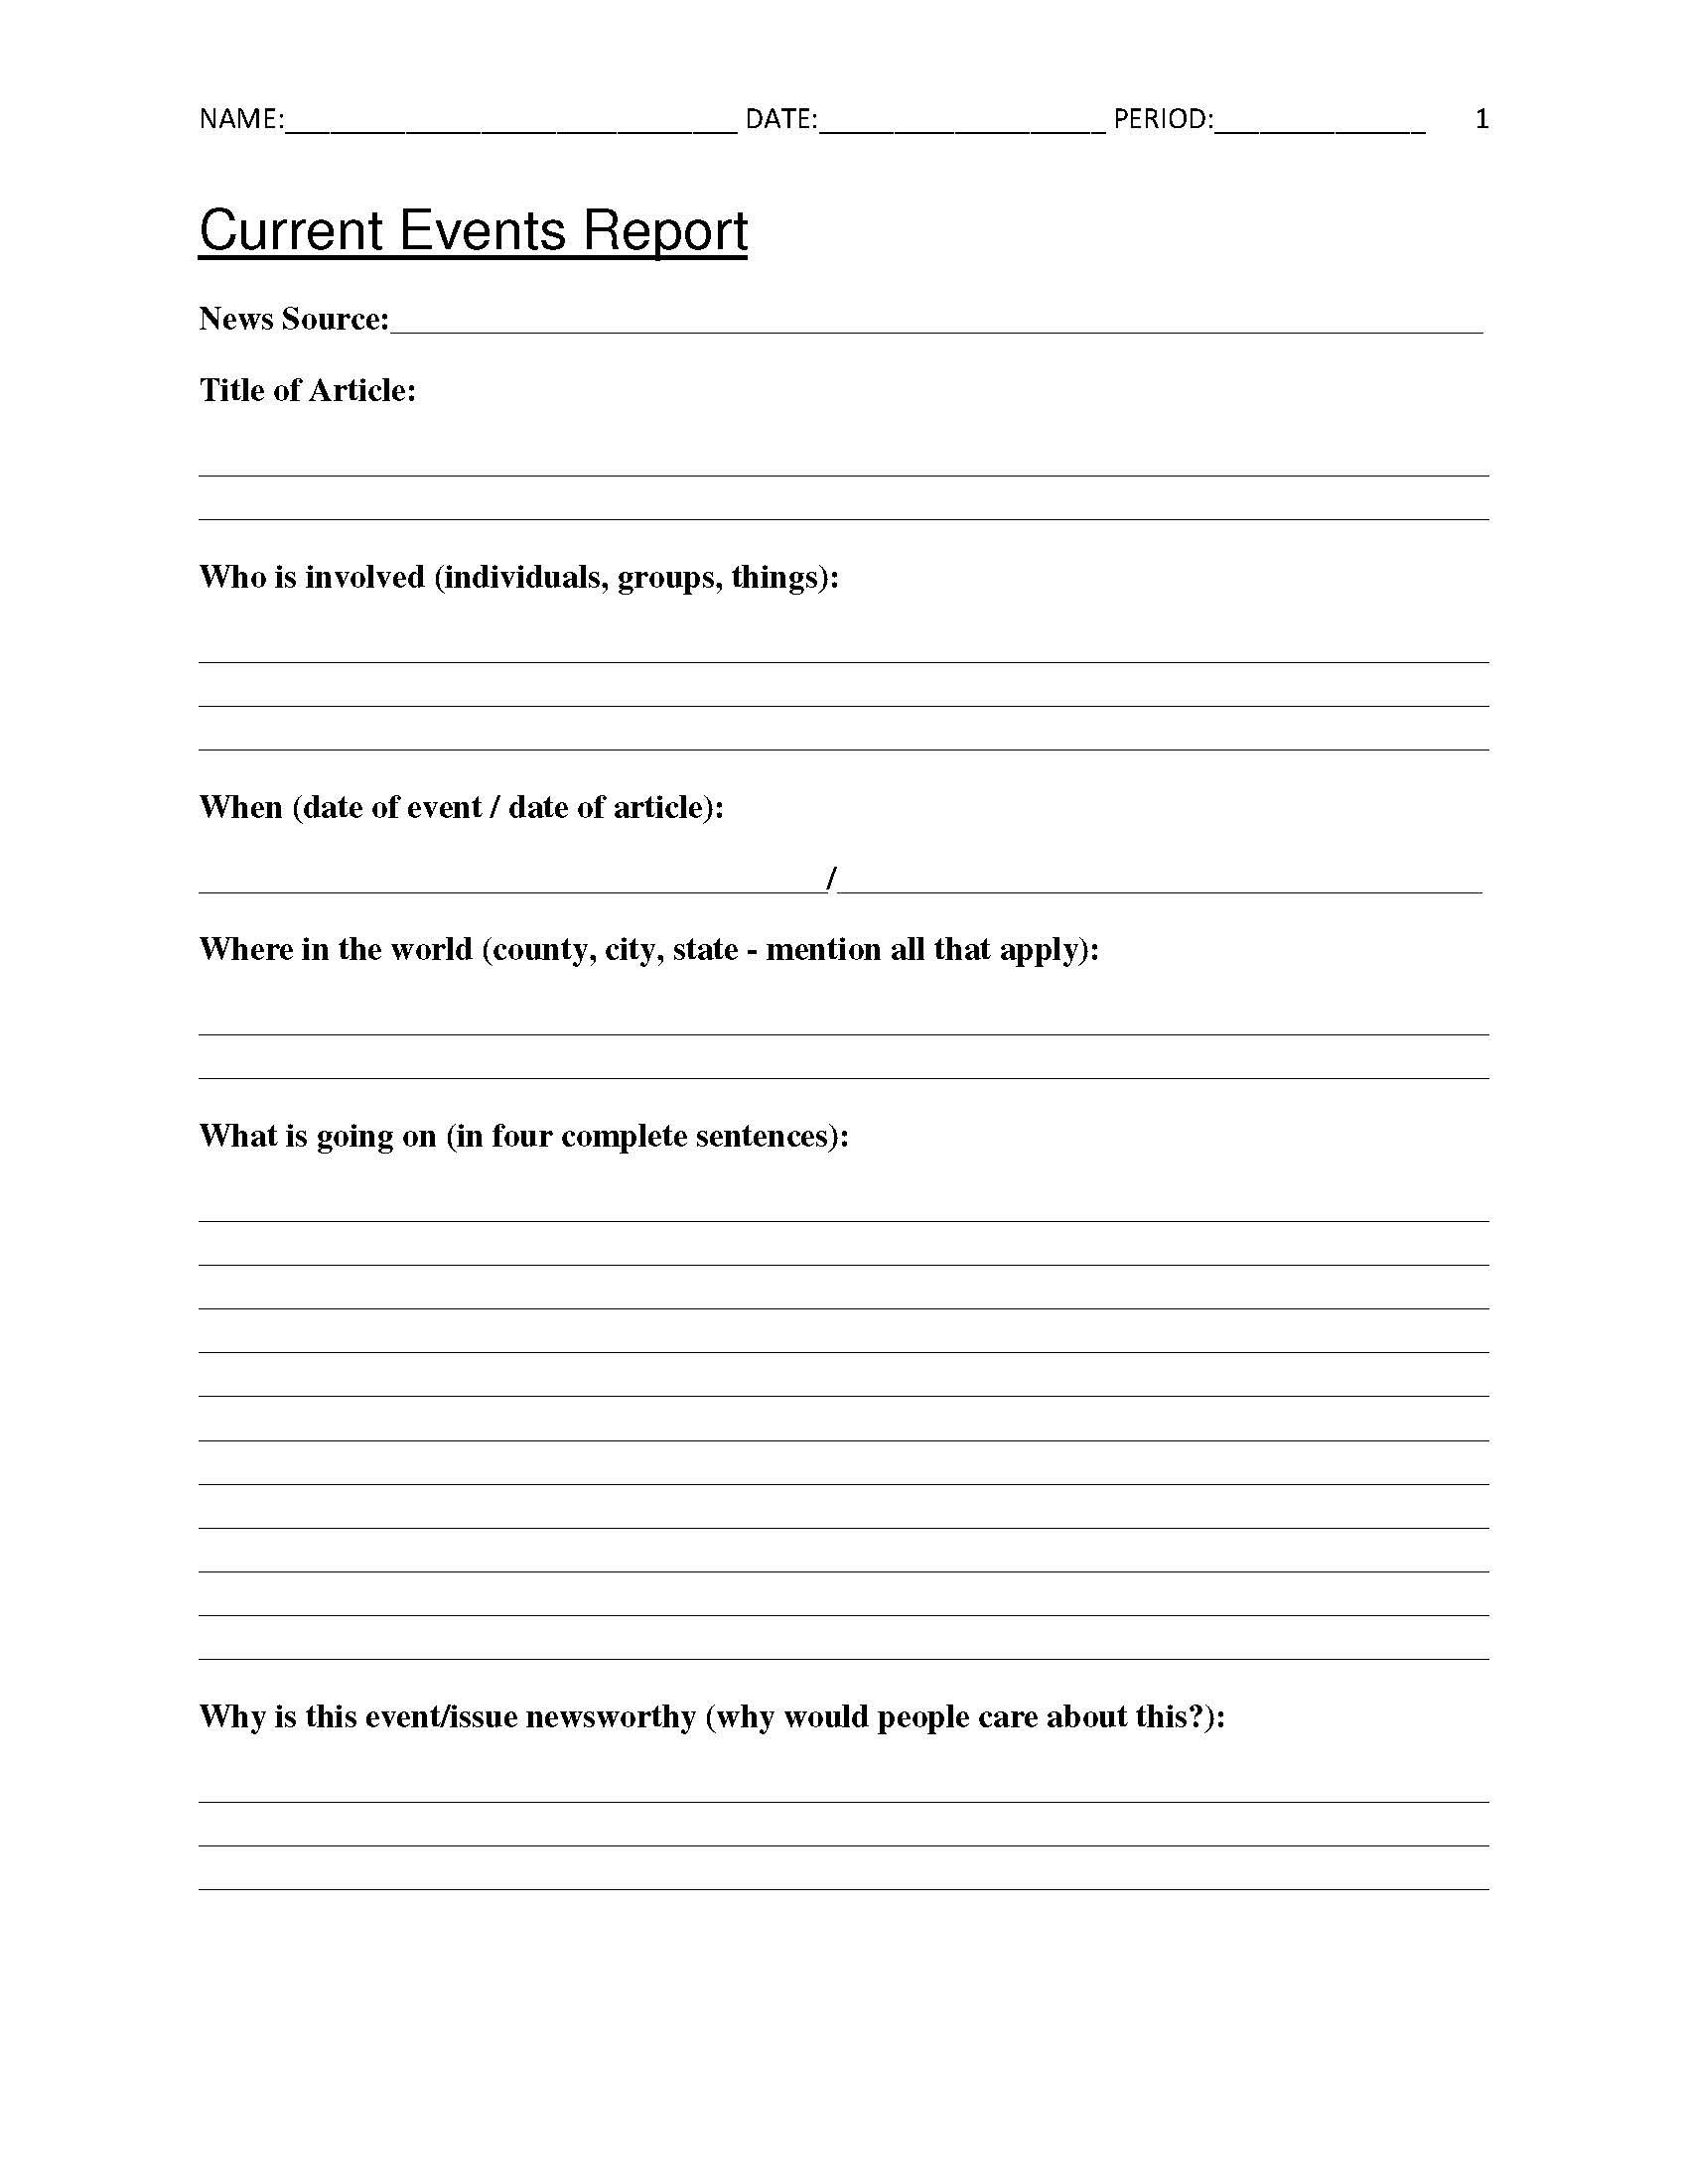 Current Events Report Worksheet for Classroom Teachers